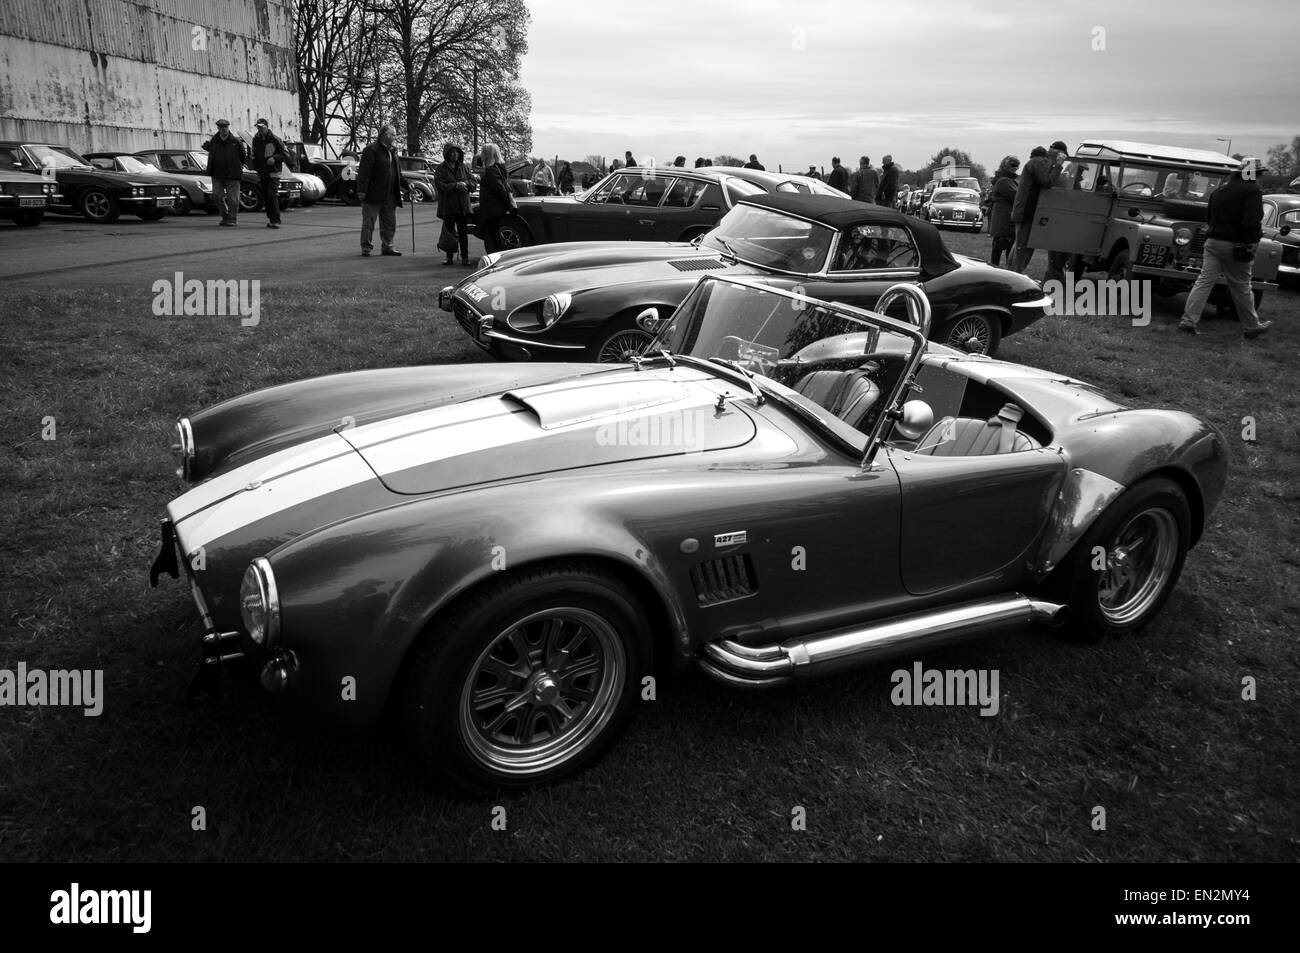 cobra car black and white stock photos images alamy. Black Bedroom Furniture Sets. Home Design Ideas